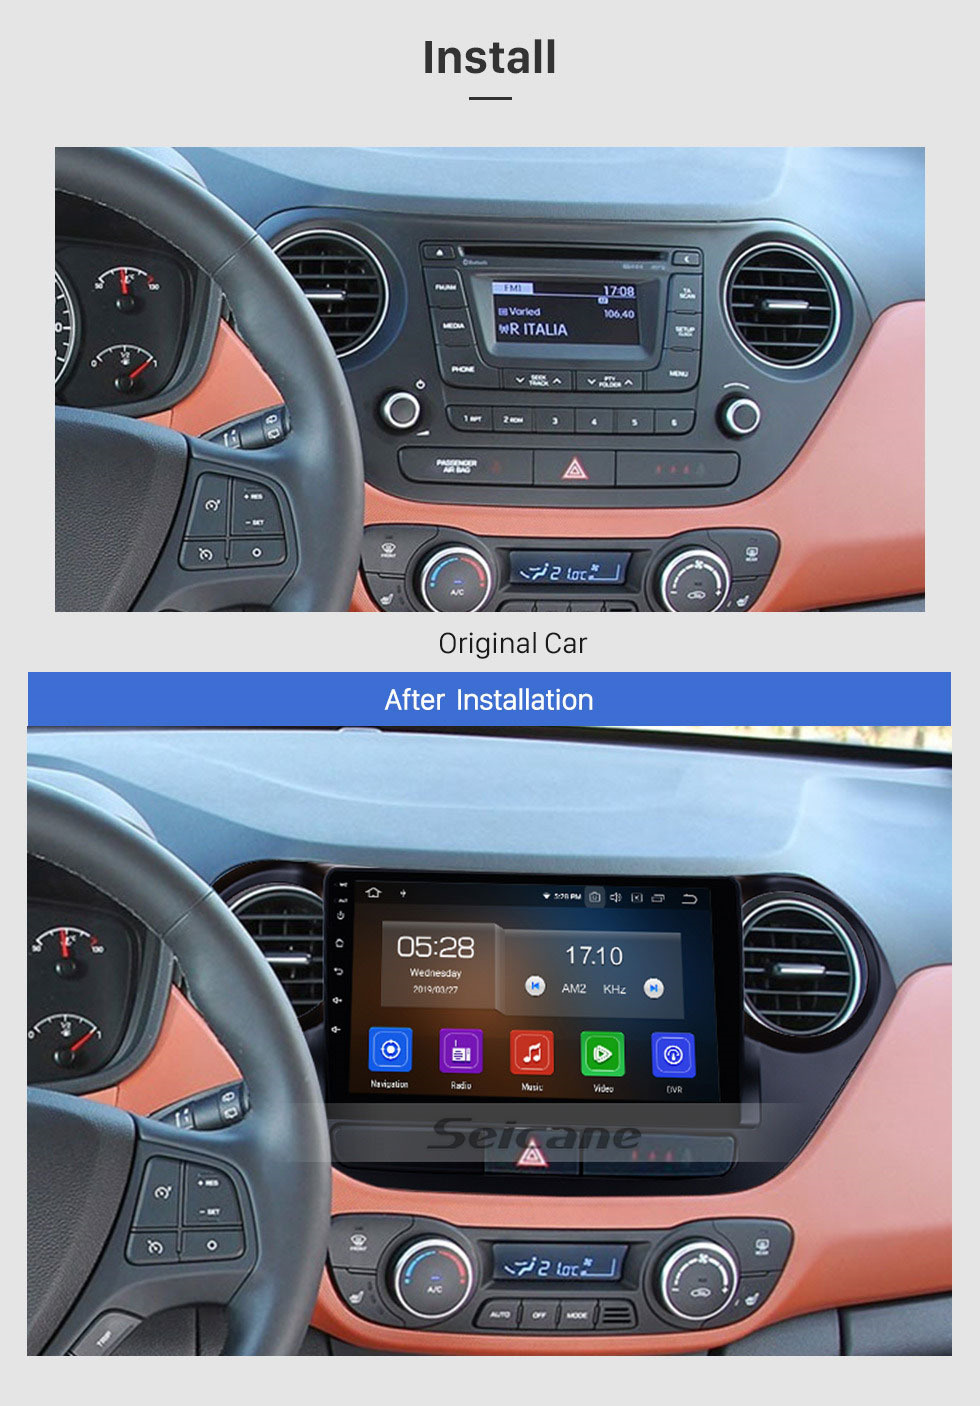 Seicane Android 9.0 9 inch 2013 2014 2015 2016 HYUNDAI I10 Left Hand Driving Radio Bluetooth GPS navigation system HD 1024*600 touch screen OBD2 DVR Rearview camera DVD player TV 1080P Video 3G WIFI Steering Wheel Control USB Mirror link